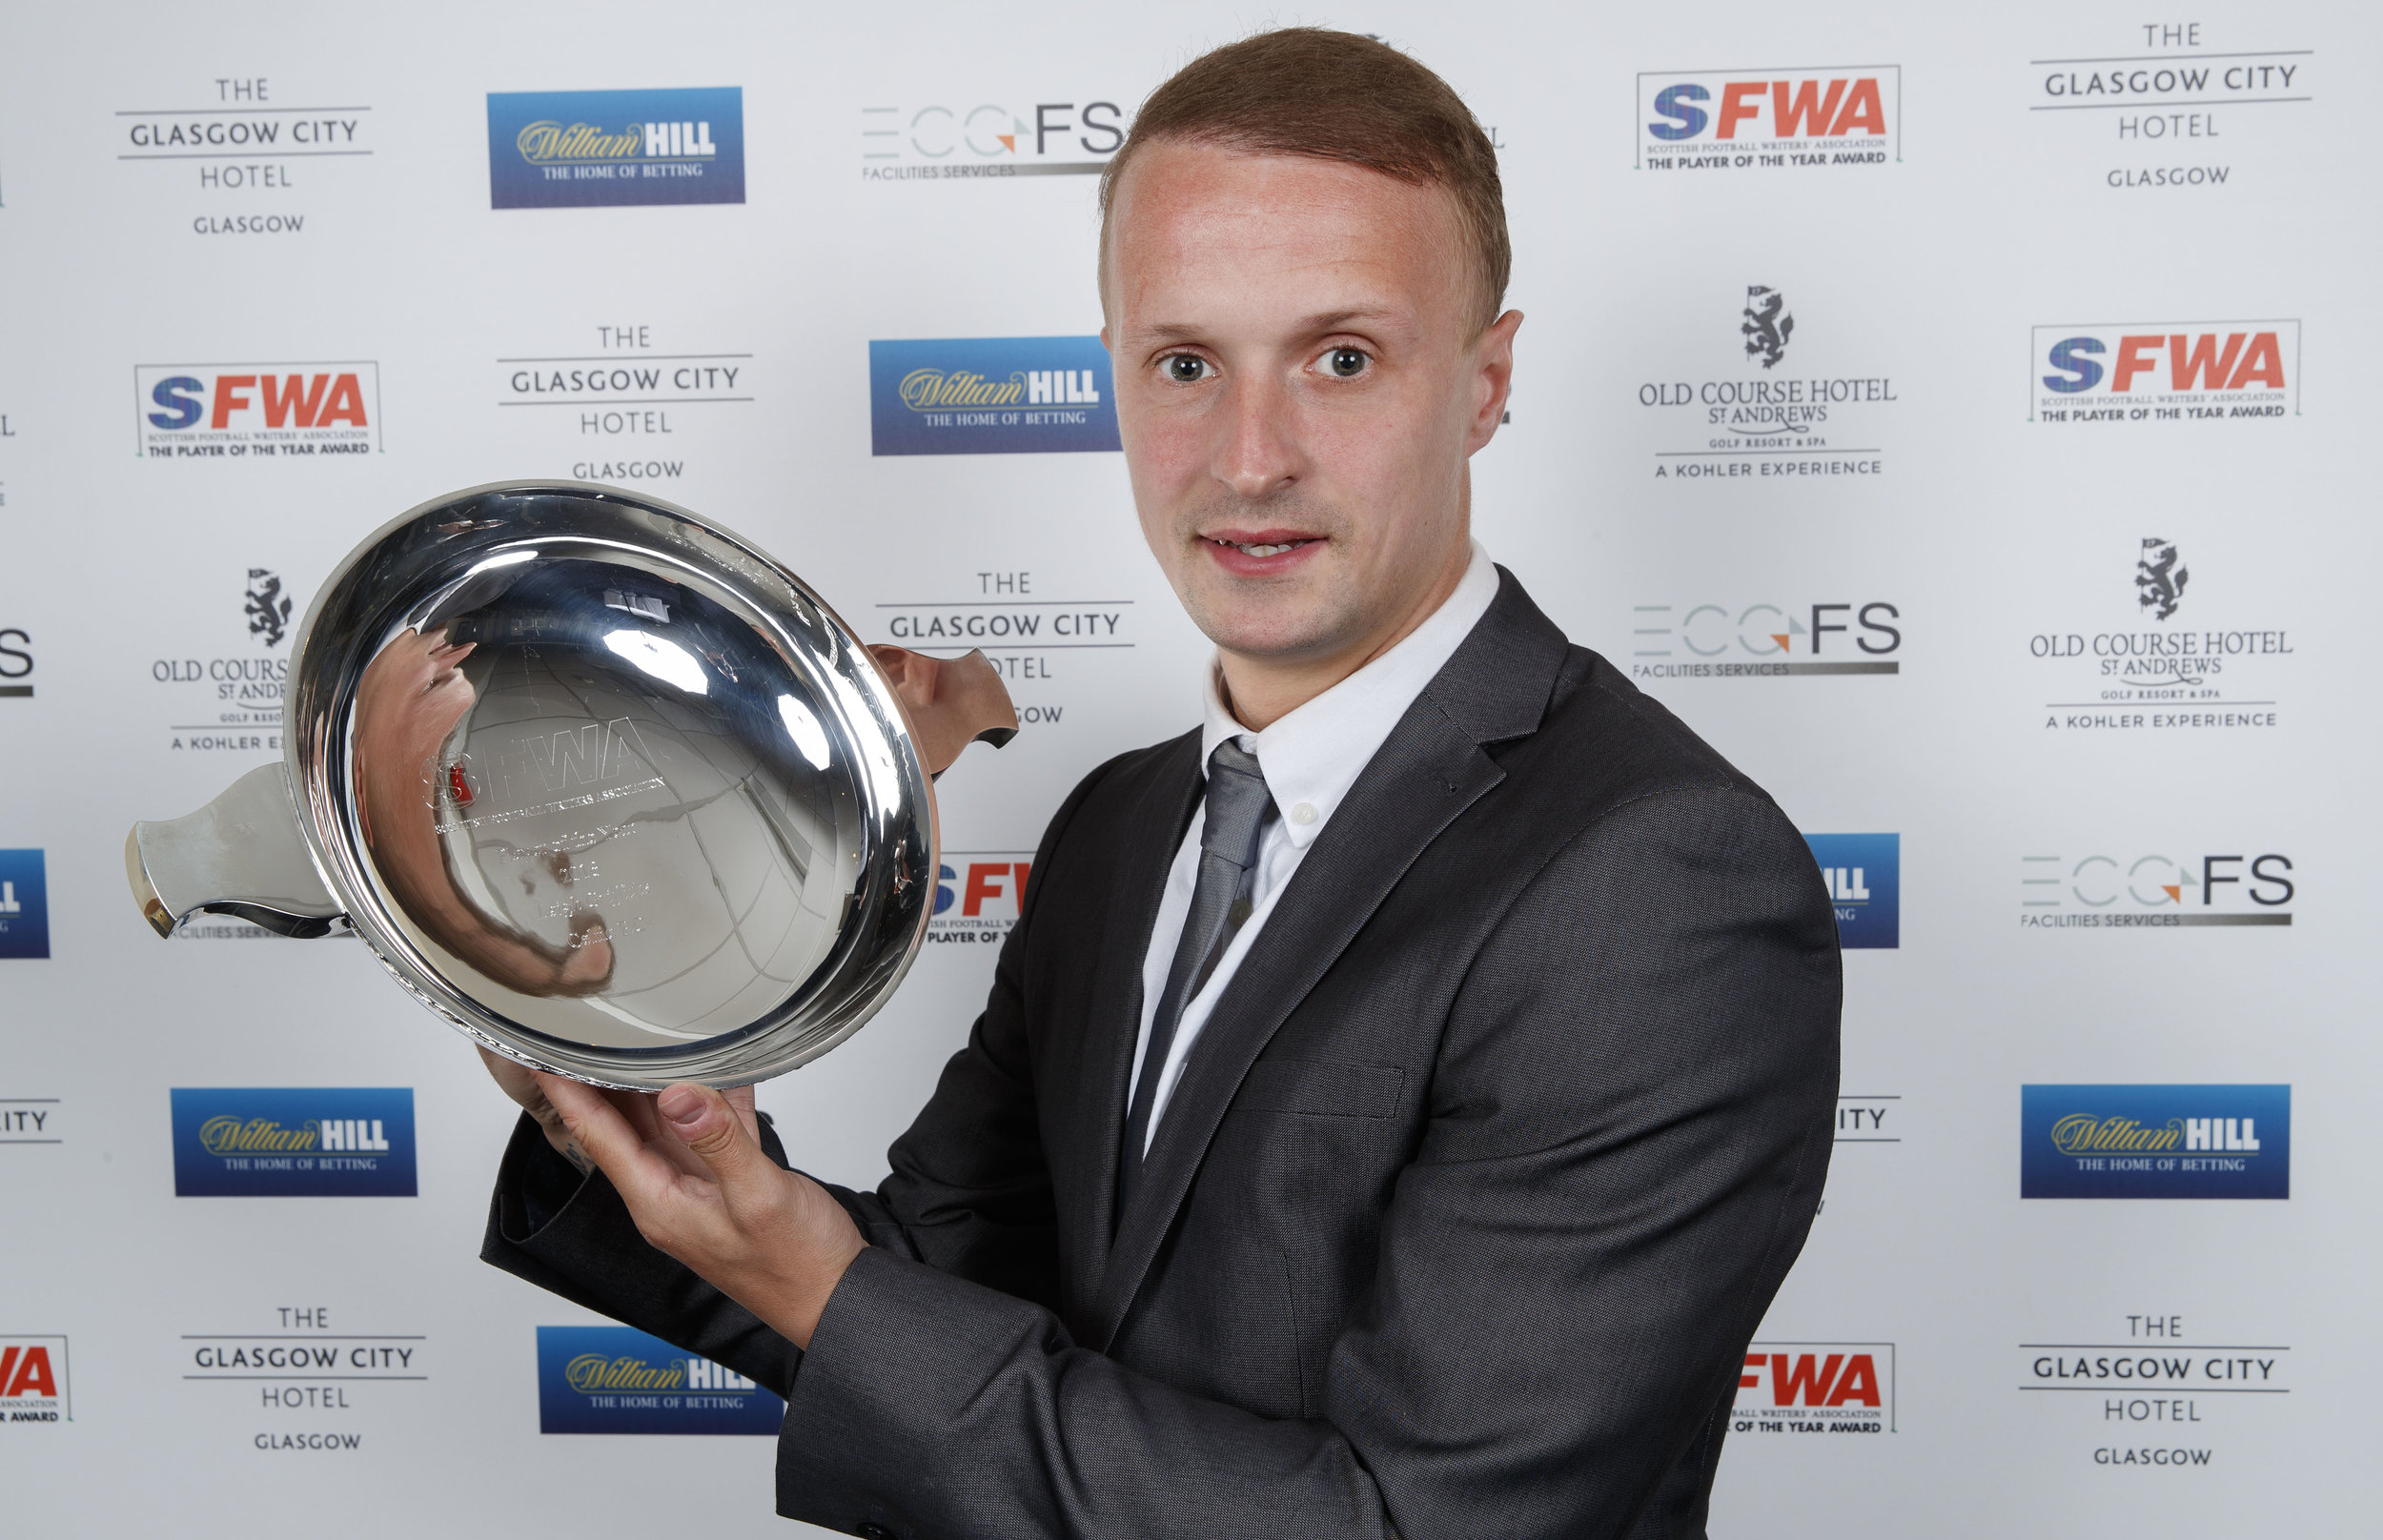 Leigh Griffiths Celtic FC Player of The Year 2016_sw1.jpg